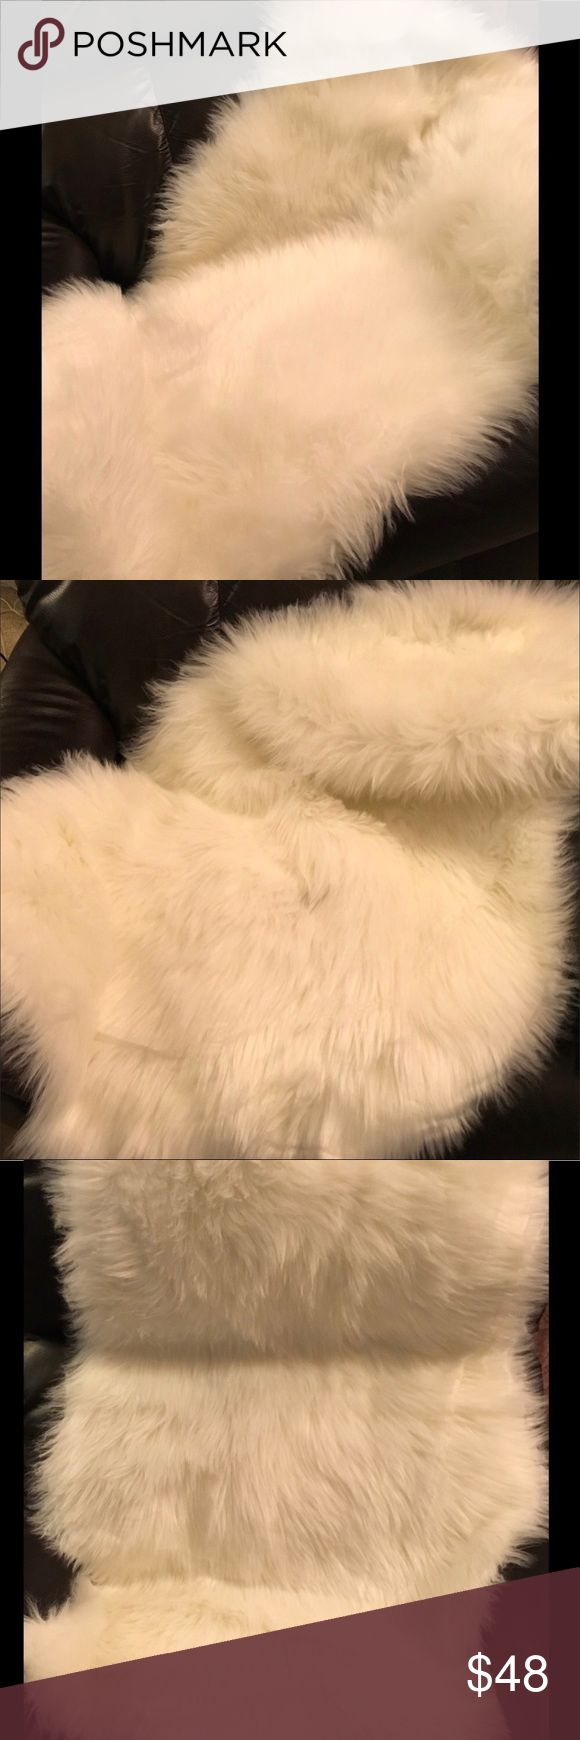 NWT - Beautiful Lambskin Rug - Quality Faux Fur. NWT - This high quality faux lambskin rug is especially nice for those 'Special' 1st time impressions. Beautiful draped on furniture, in front of your fireplace or laid at the foot of your bed. Beautiful. (It is also especially nice to have to photograph your posh items on too. It makes for a beautiful background for many items. 💞) Accessories